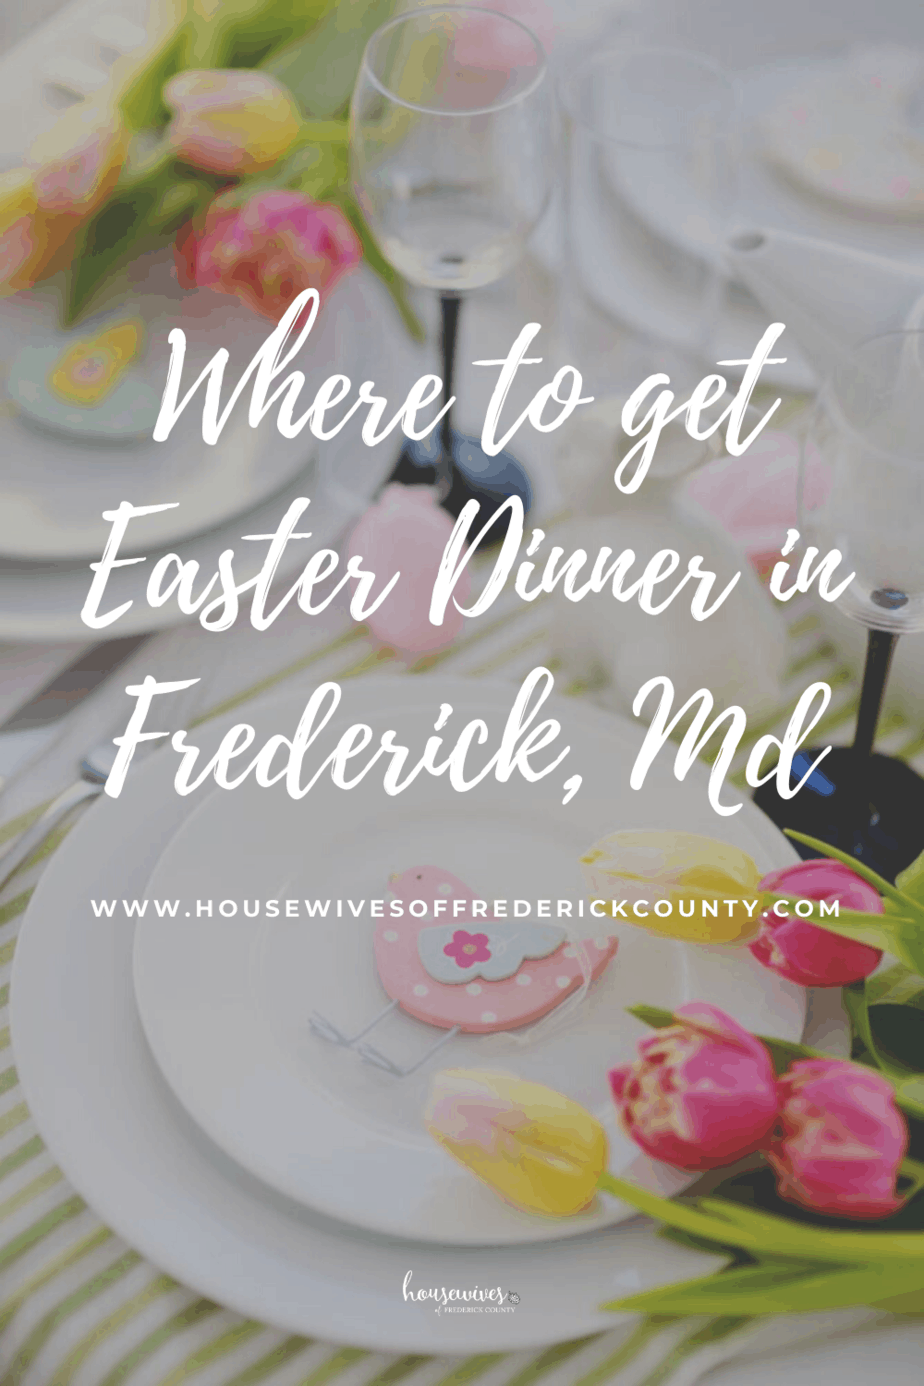 Where To Get Easter Dinner in Frederick Md (2021)